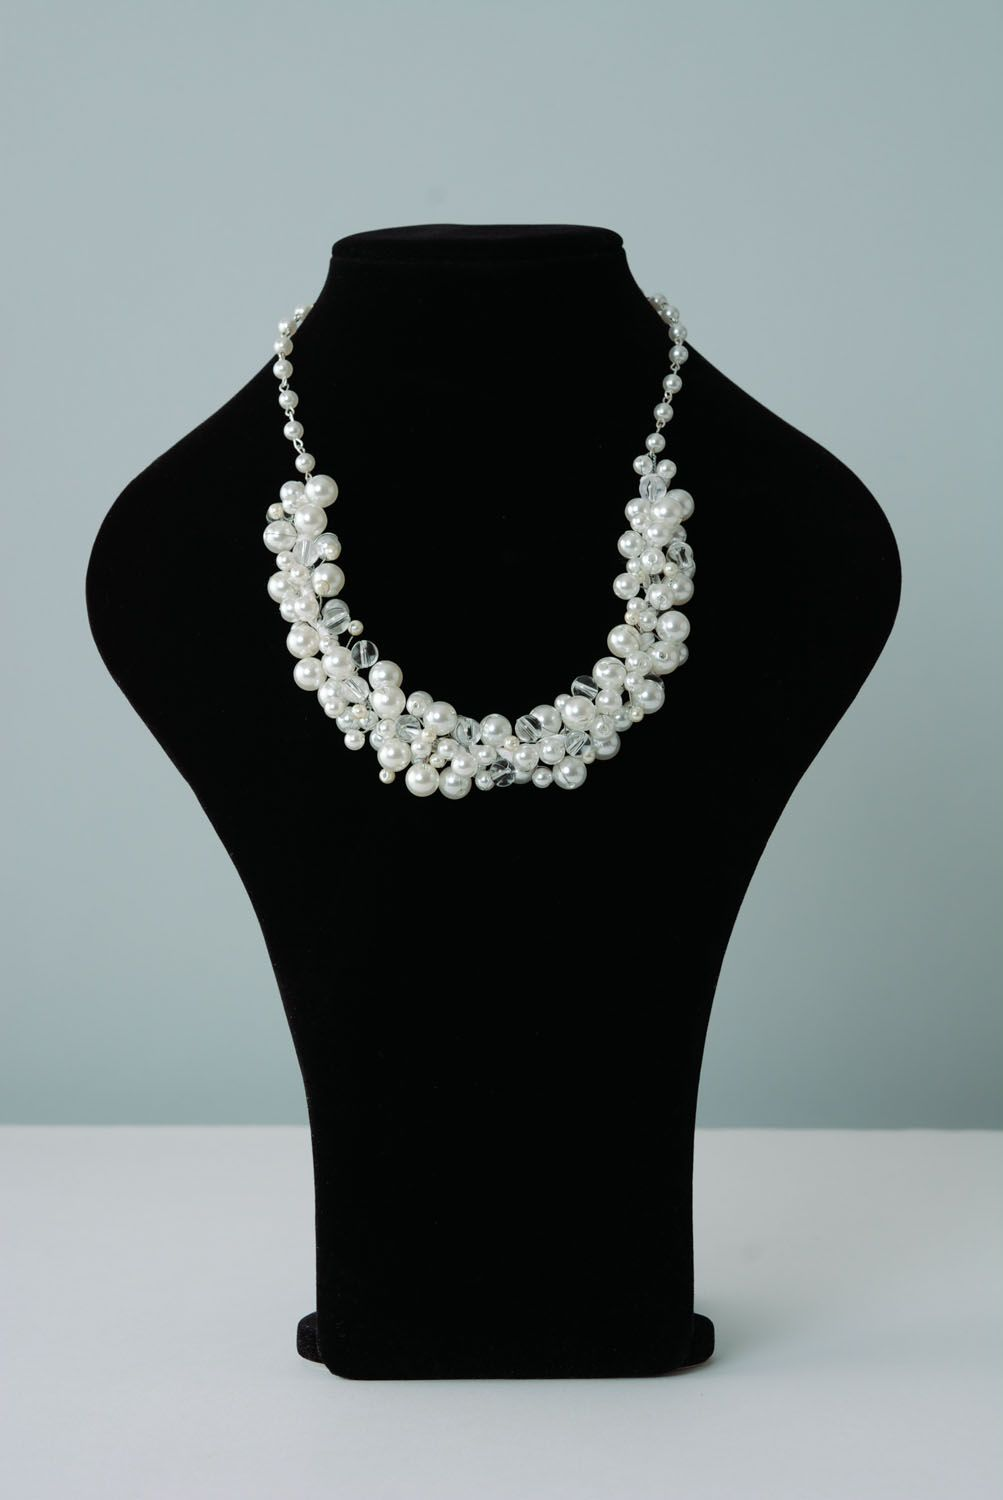 Necklace with pearl-like beads photo 1